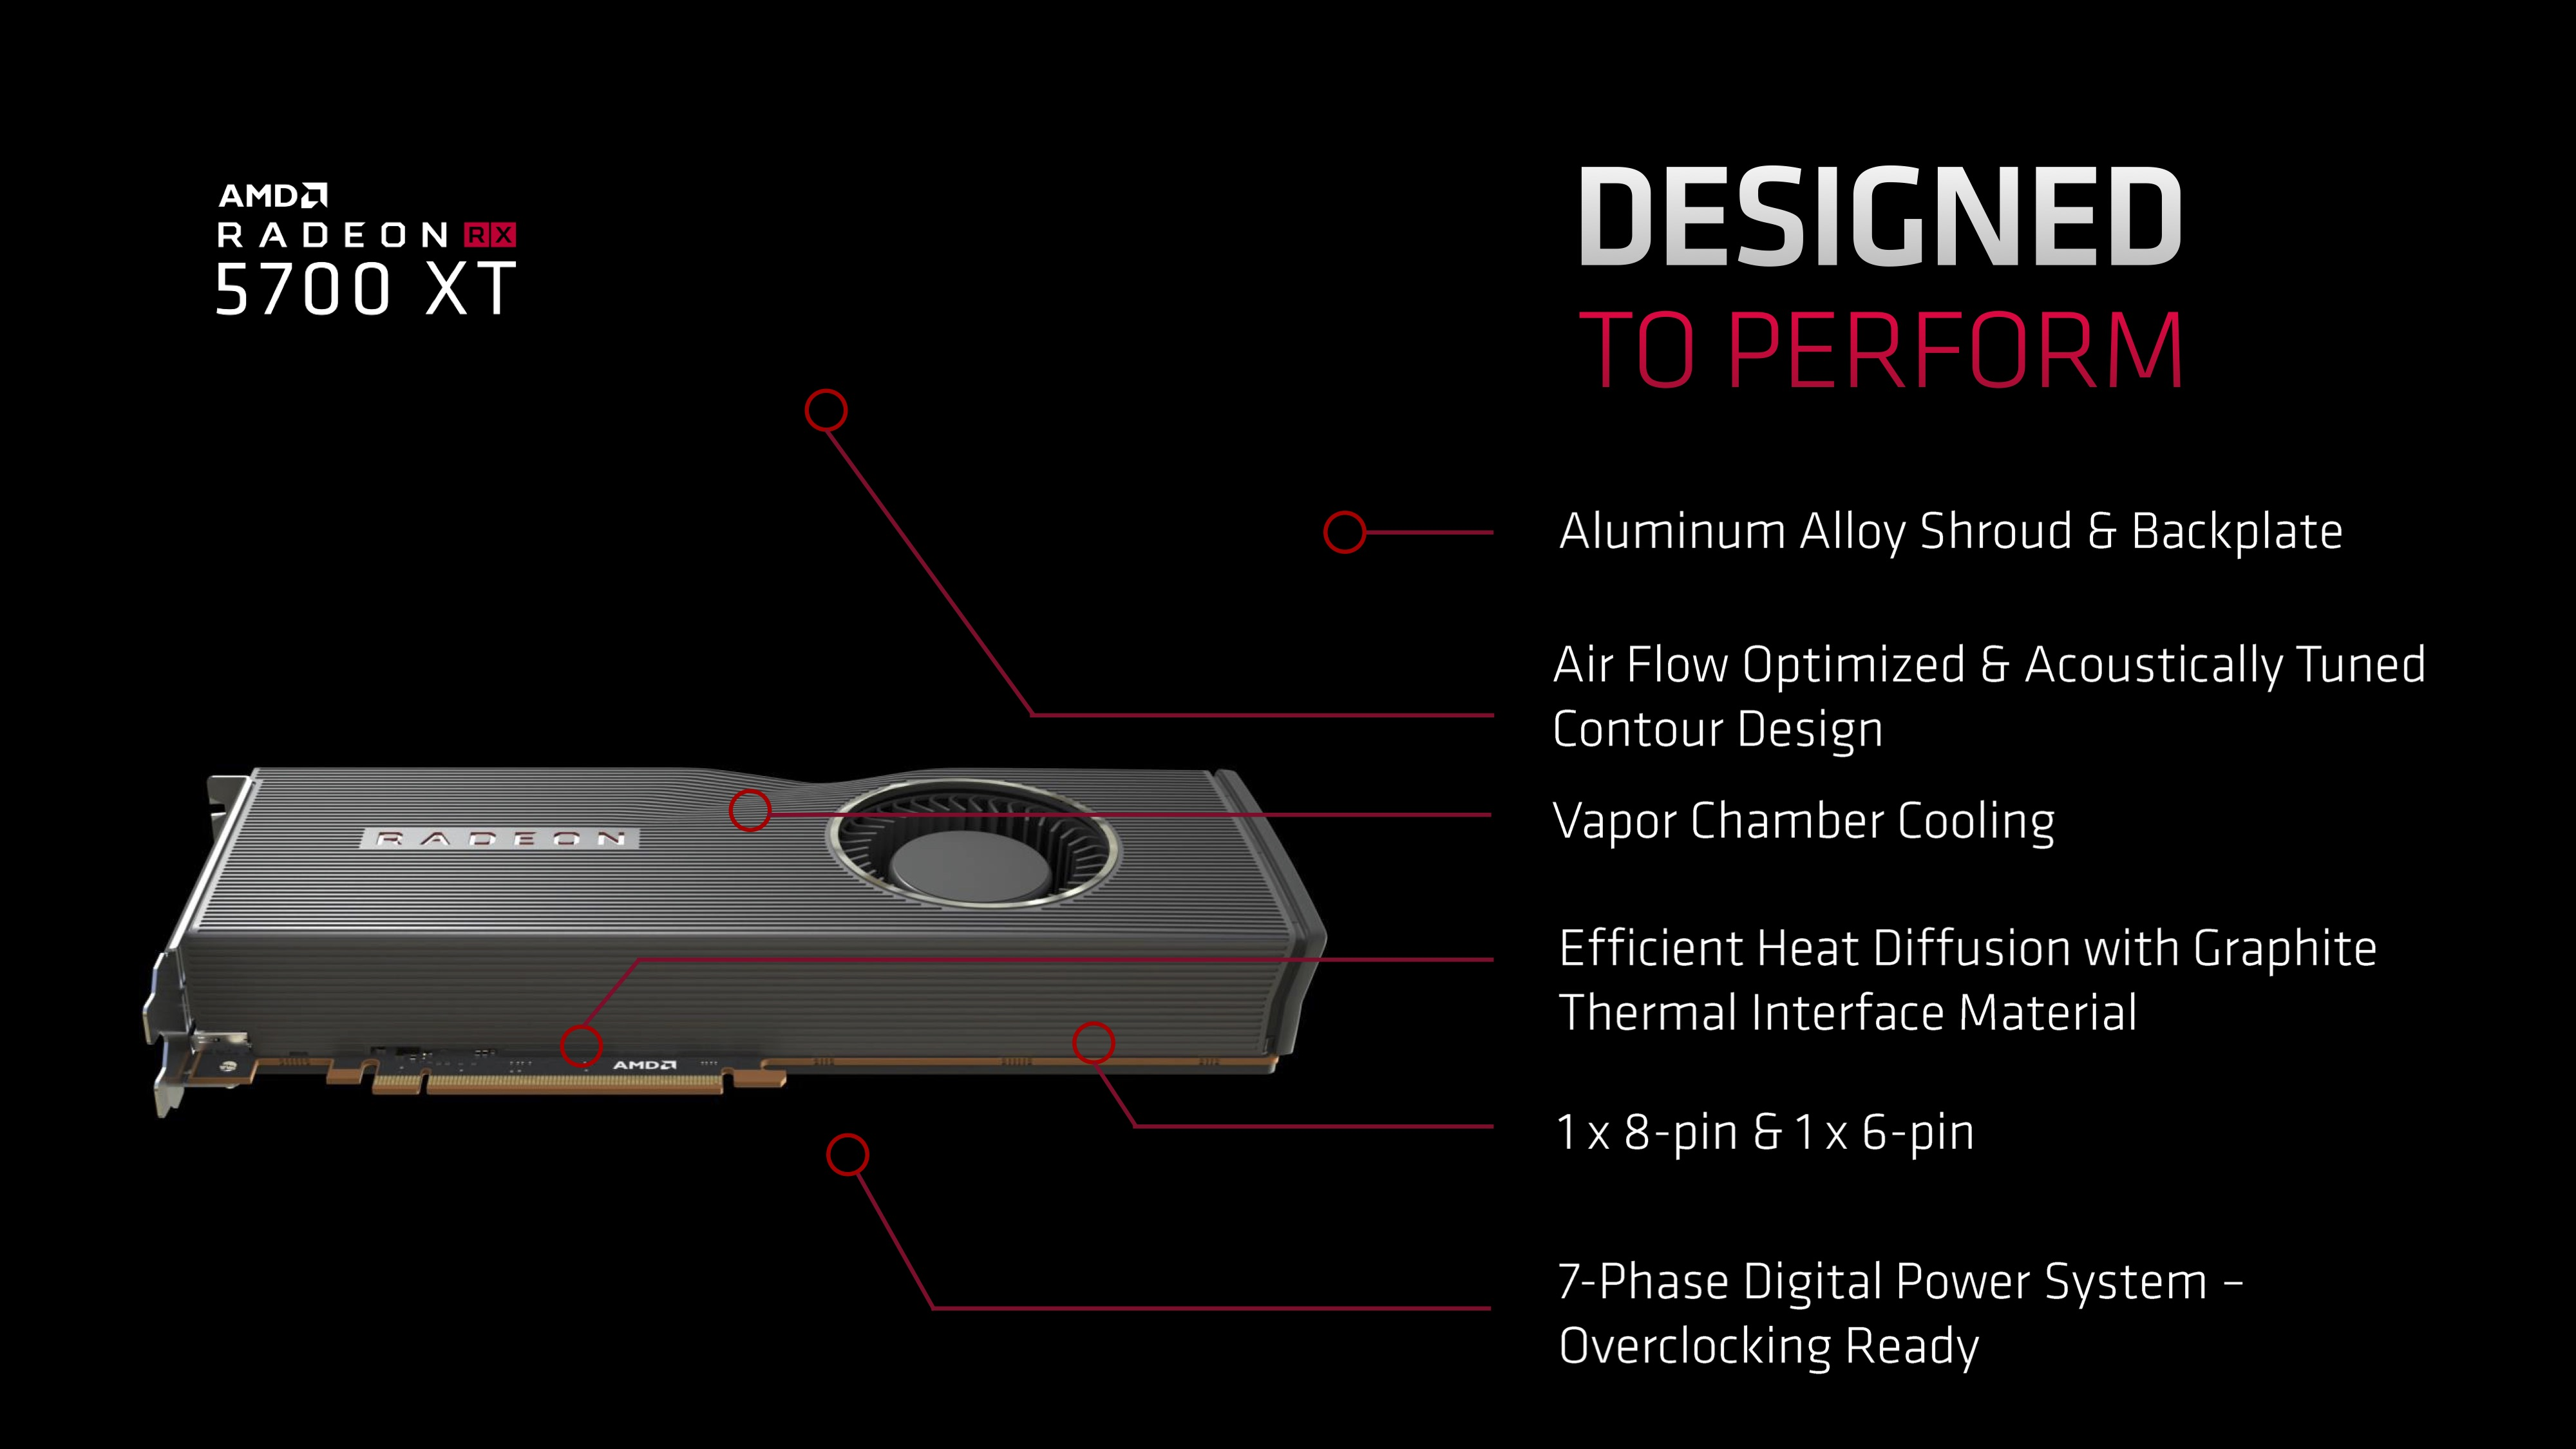 Amd Announces Radeon Rx 5700 Xt Rx 5700 The Next Gen Of Amd Video Cards Starts On July 7th At 449 379